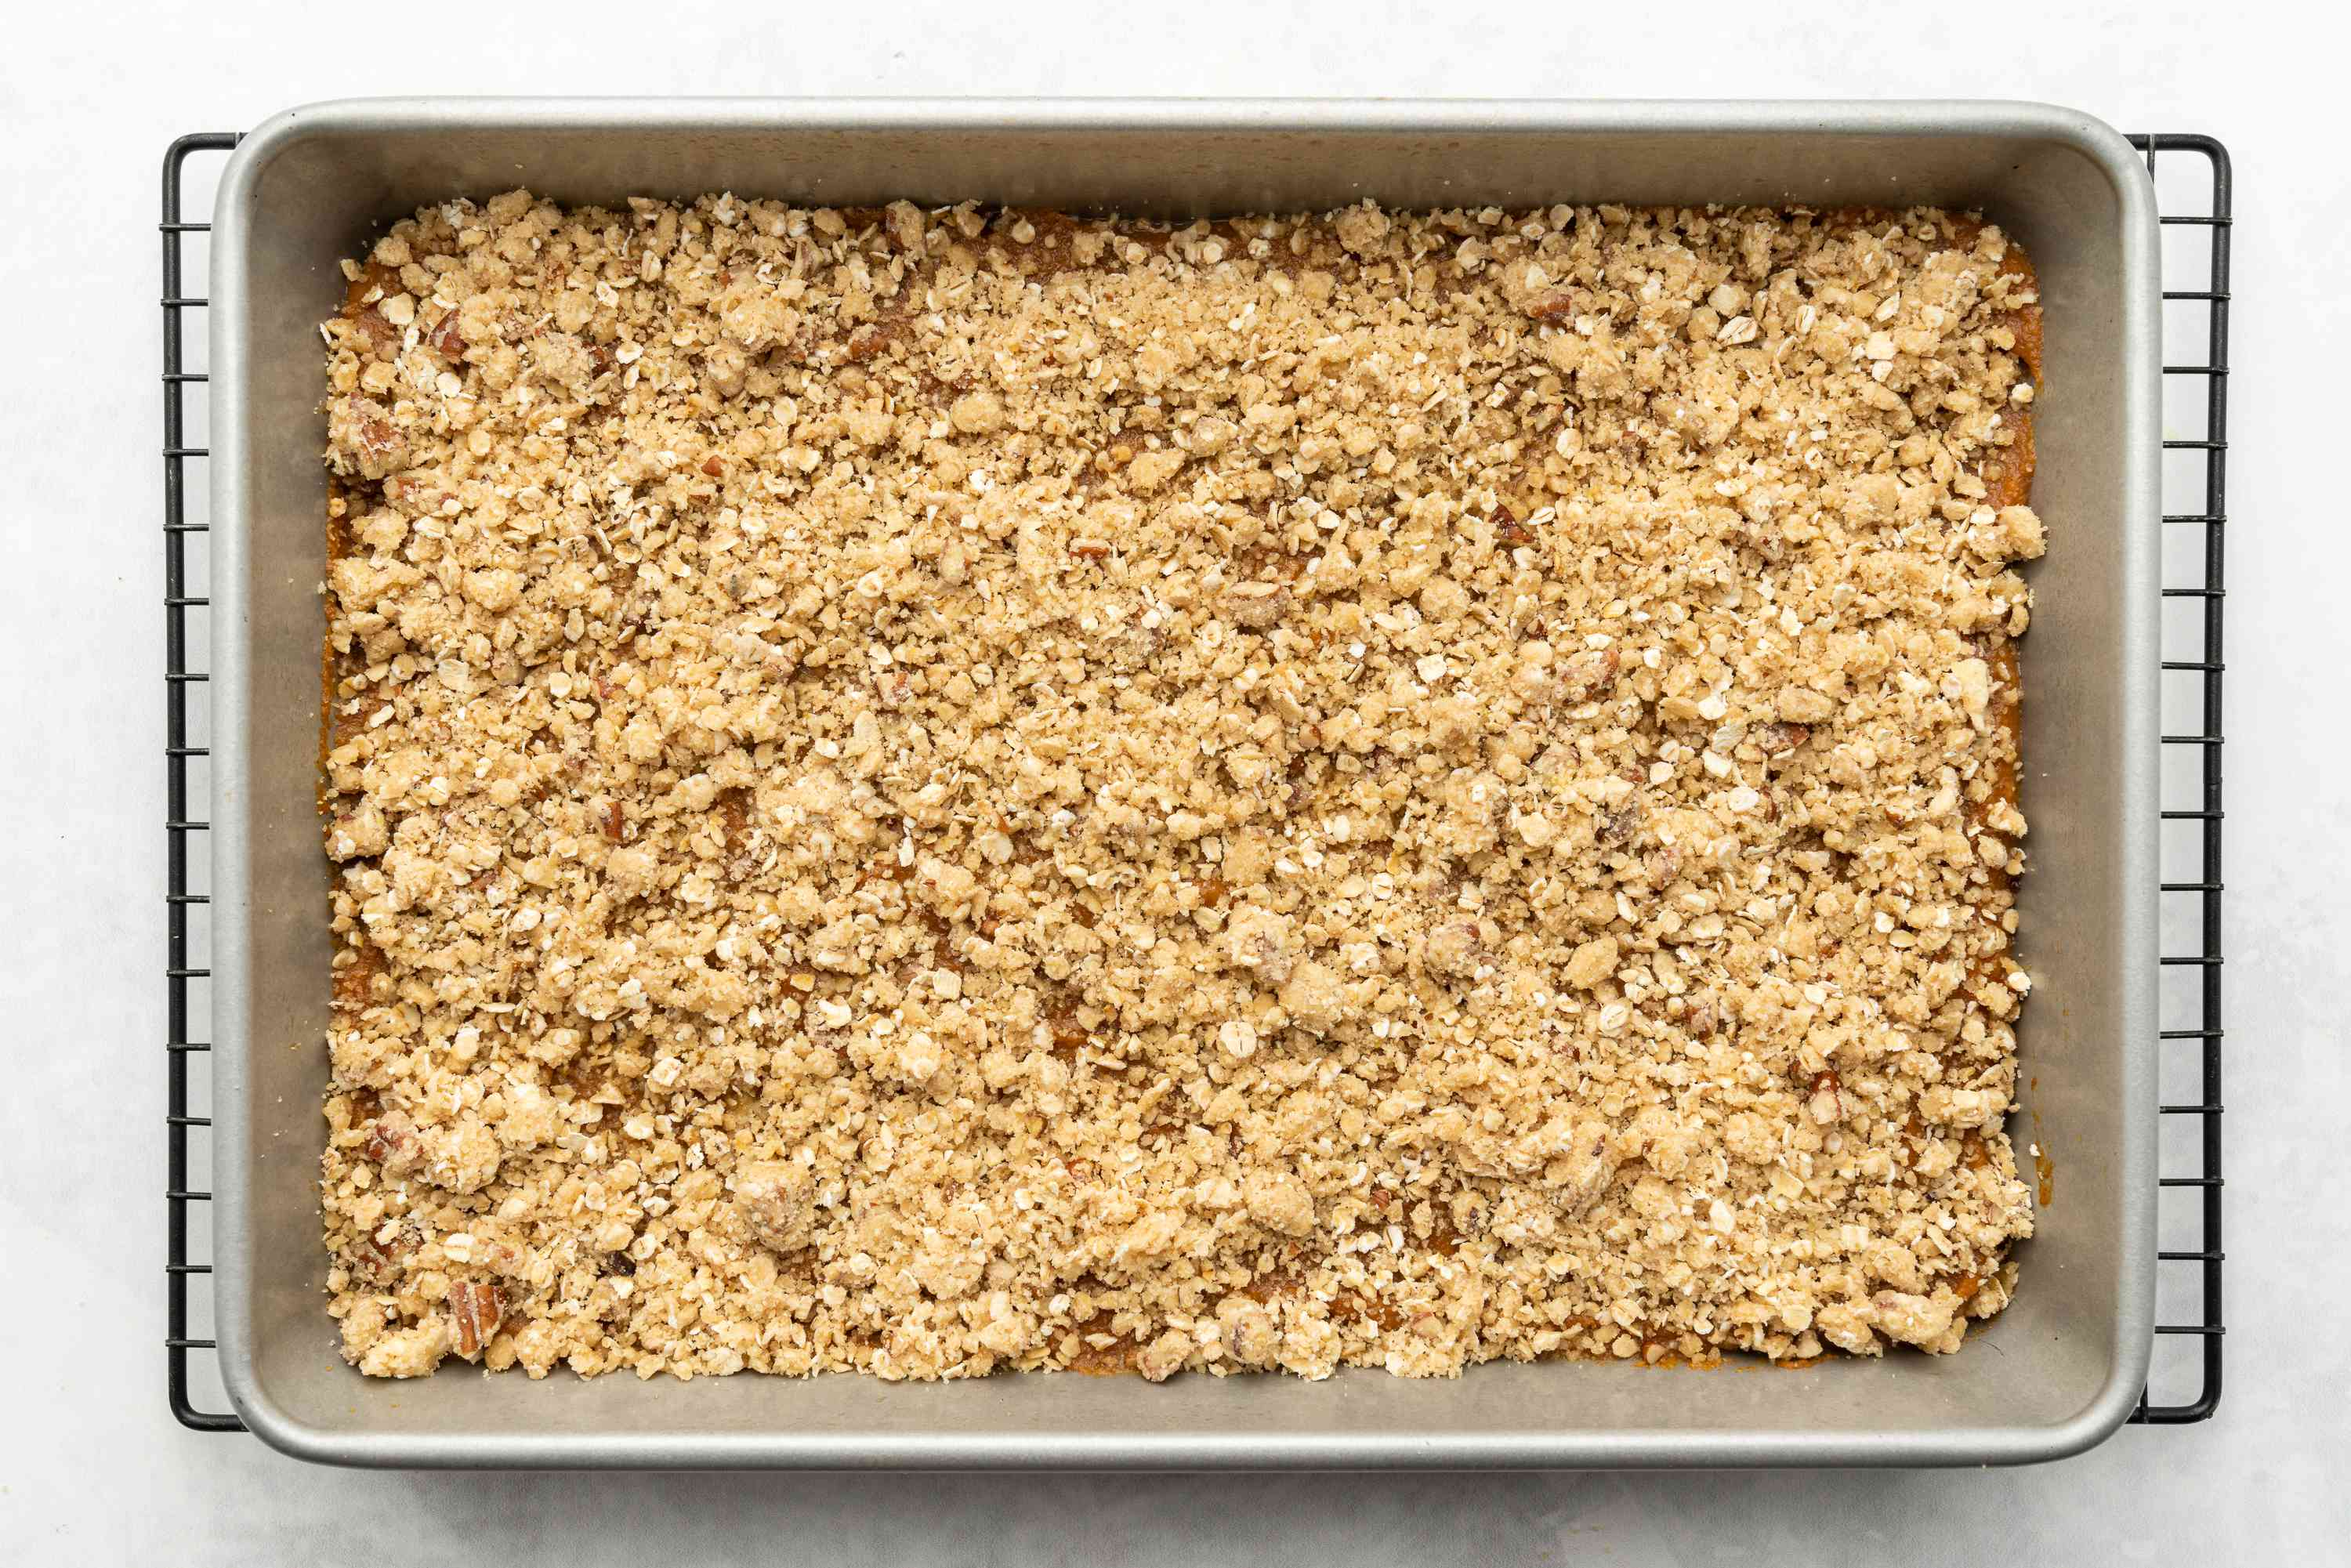 baked crumble in a baking pan on a cooling rack